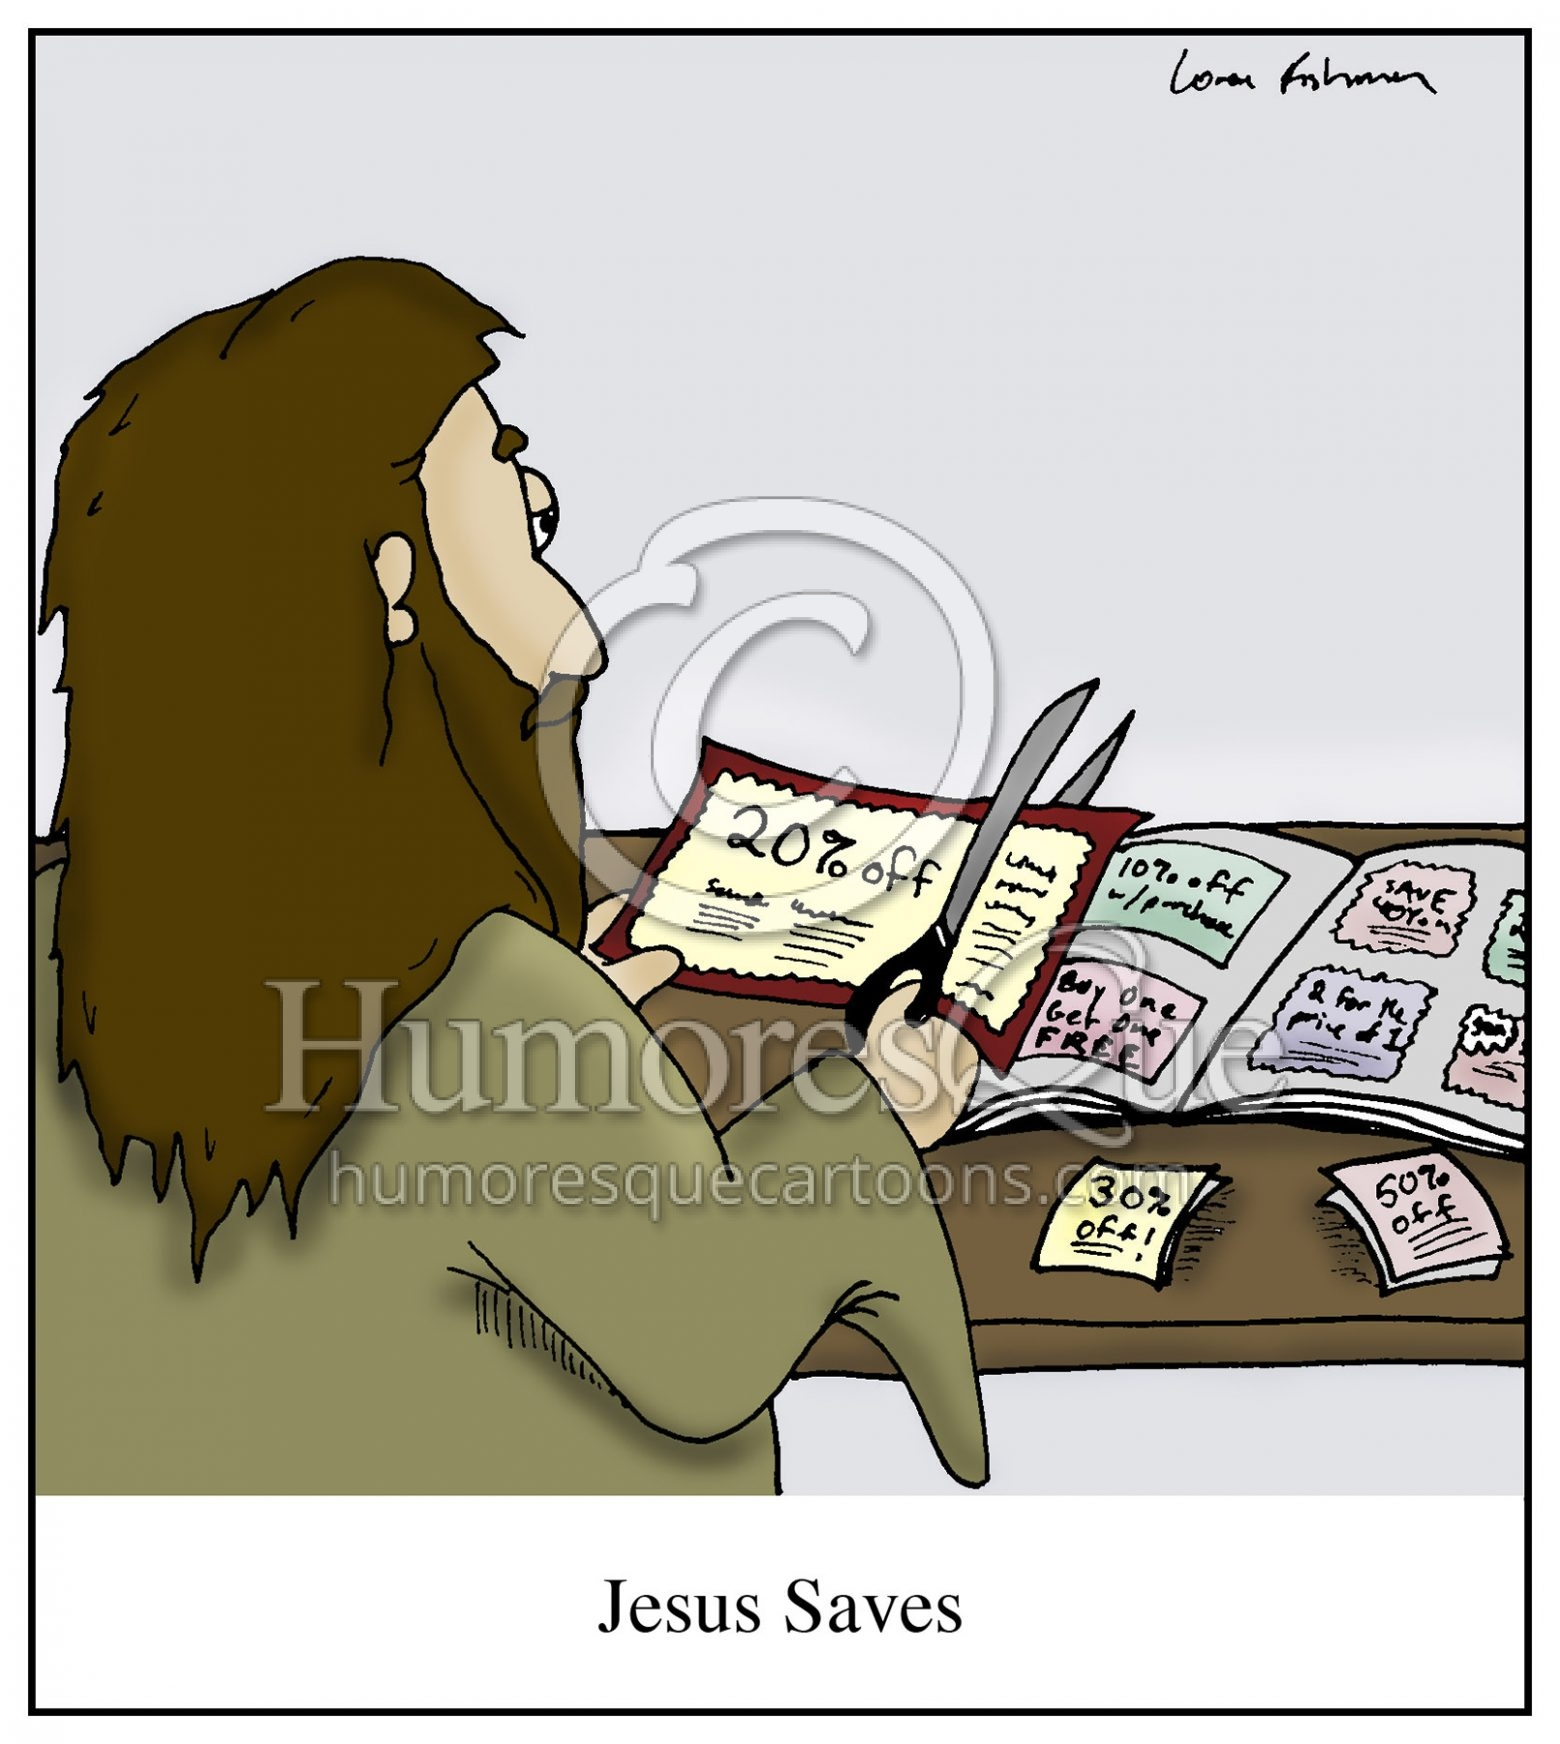 Jesus saves coupon cutting cartoon